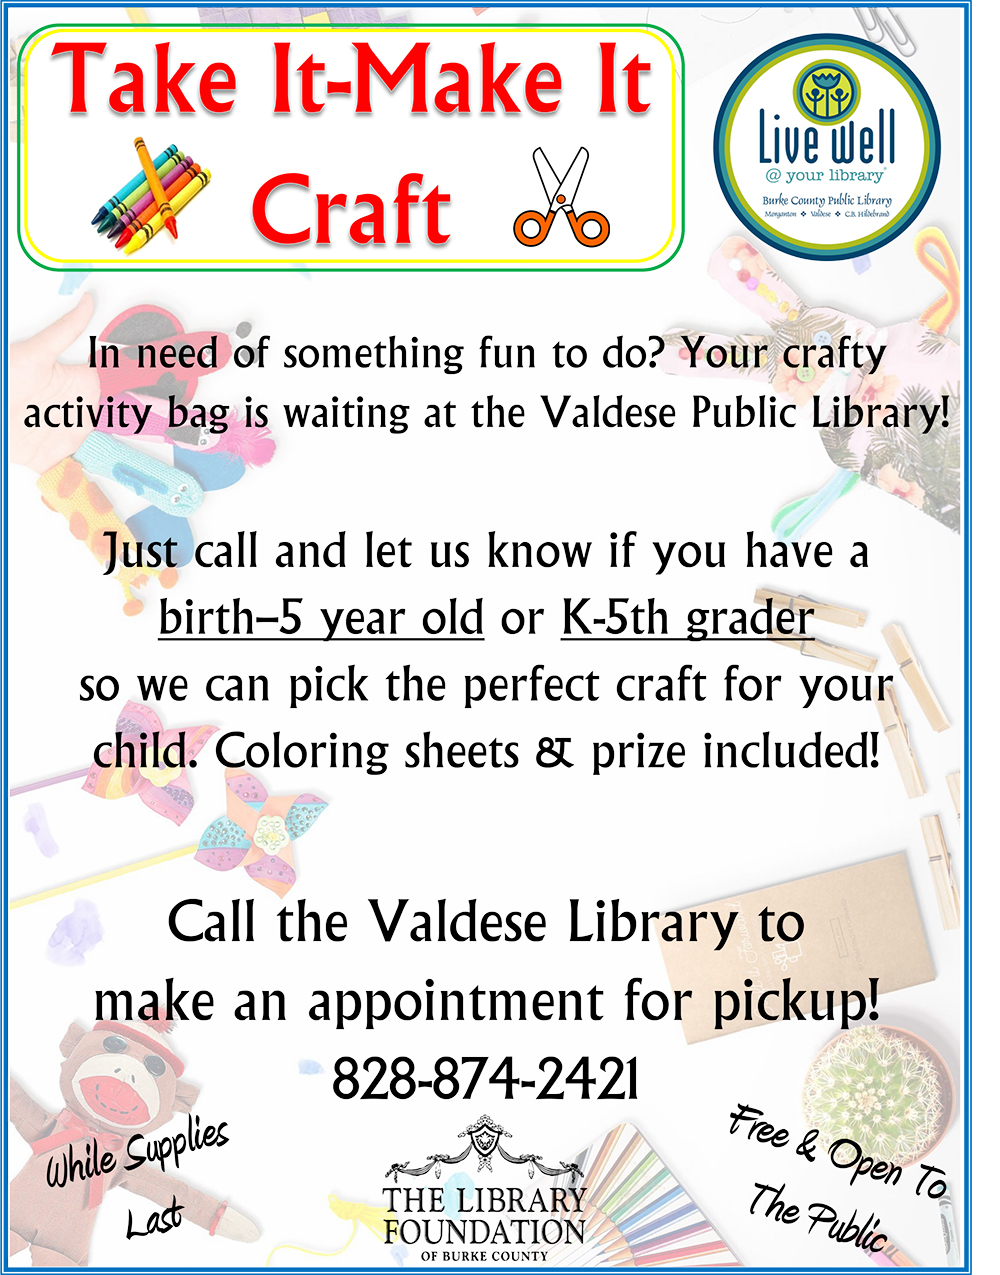 Take It-Make It Craft 					In need of something fun to do? Your crafty activity bag is waiting at the Valdese Public Library! 					Just call and let us know if you have a birth–5 year old or K-5th grader so we can pick the perfect craft for your child. Coloring sheets & prize included! 					Call the Valdese Library to make an appointment for pickup! 828-874-2421